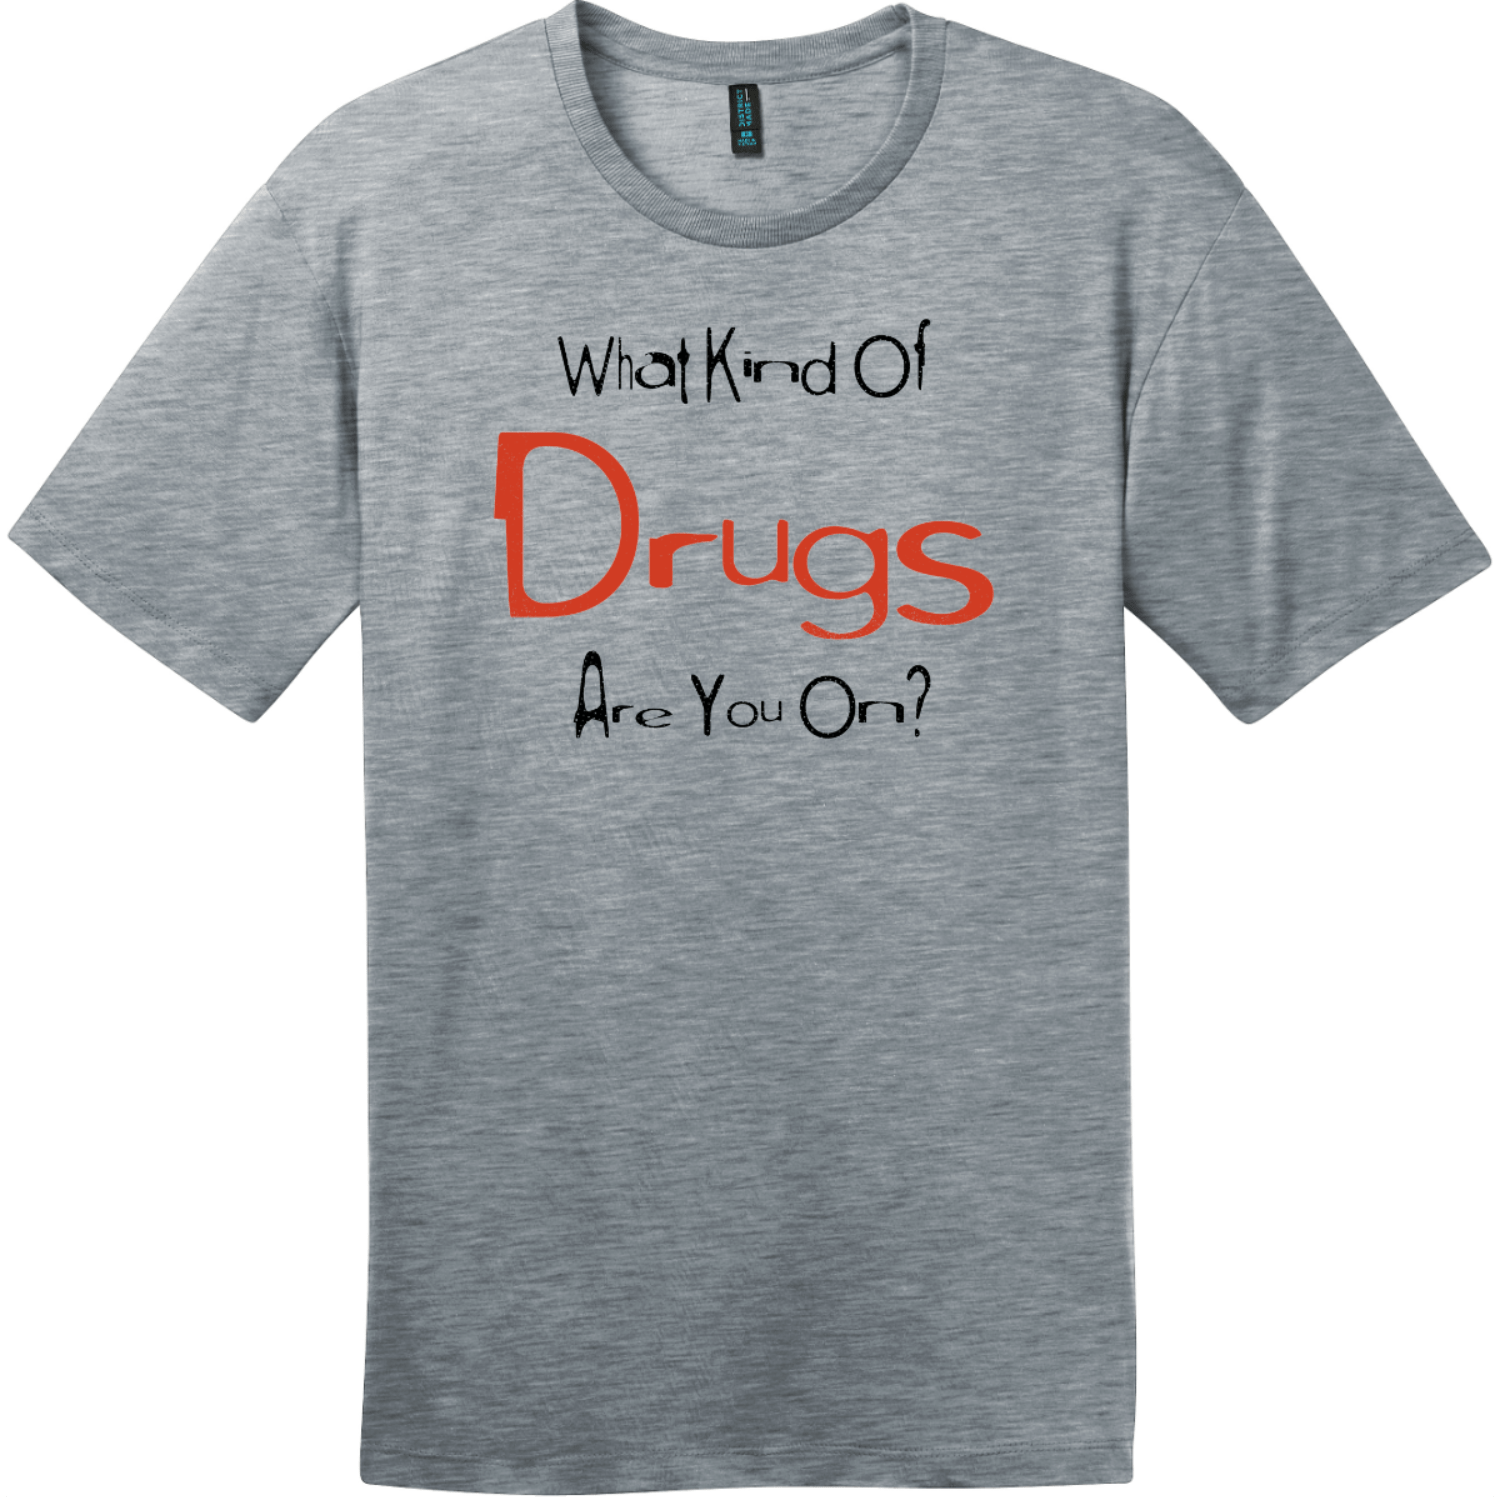 What Kind Of Drugs Are You On T-Shirt Heathered Steel District Perfect Weight Tee DT104